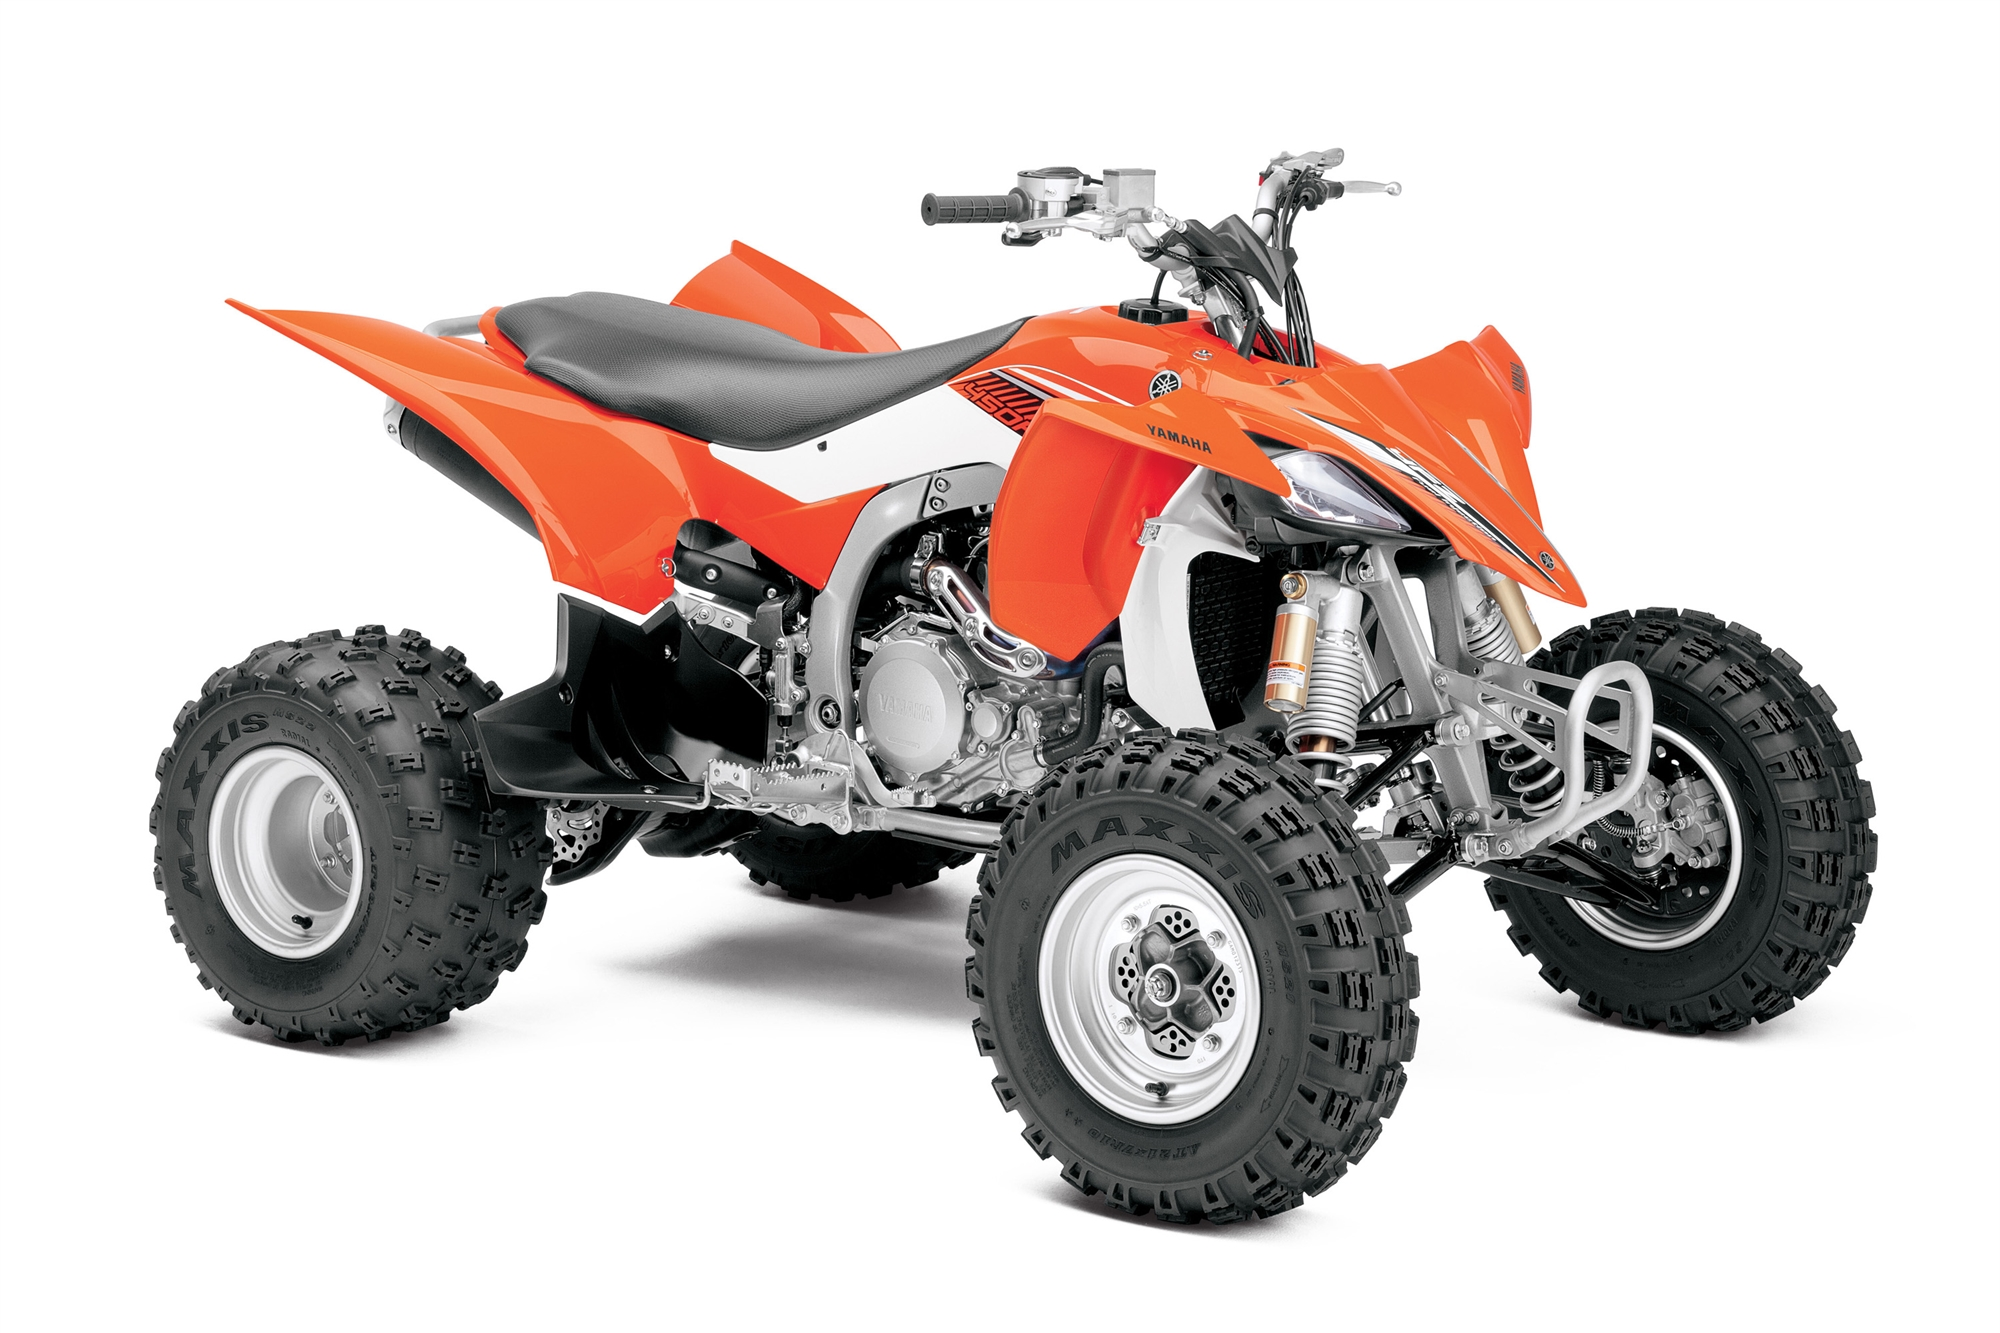 Yamaha Yfz R Brings Slipper Clutch To The Atv World besides D Swap Progress Imageuploadedbytapatalk together with S L as well Yamaha Grizzly further Yamaha Grizzly. on 2013 yamaha grizzly 450